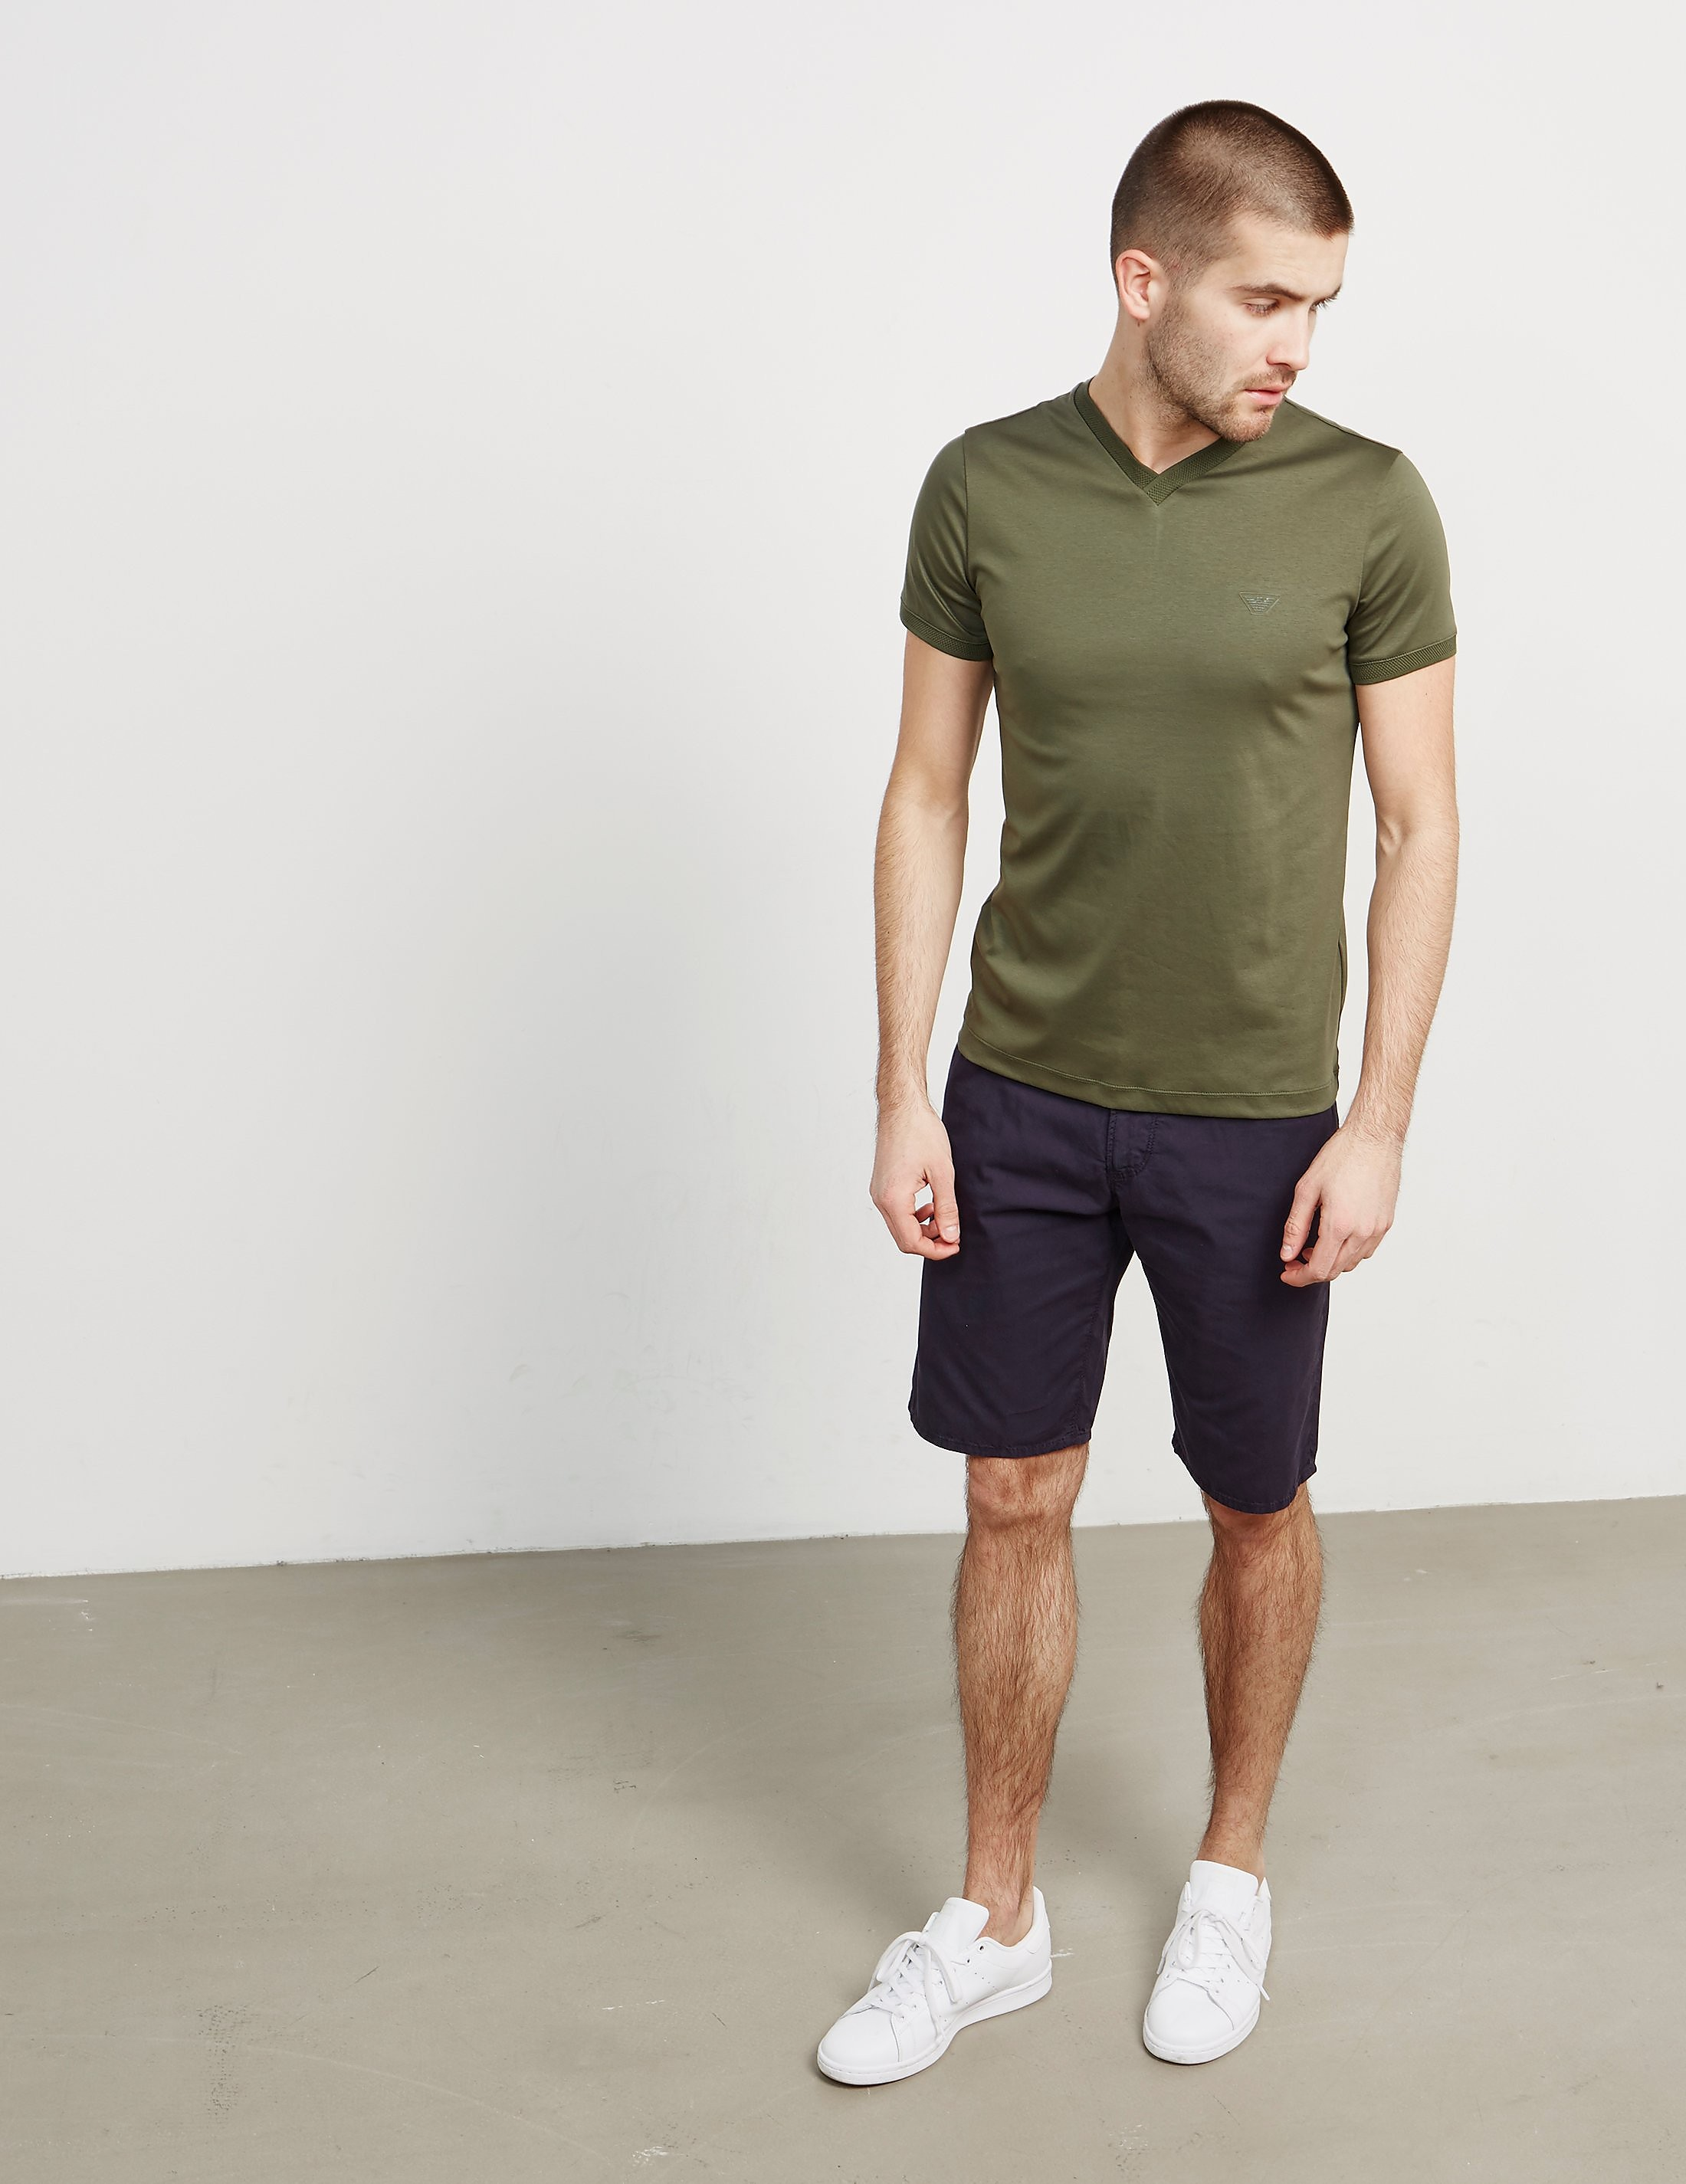 Emporio Armani Interlock V-Neck Short Sleeve T-Shirt